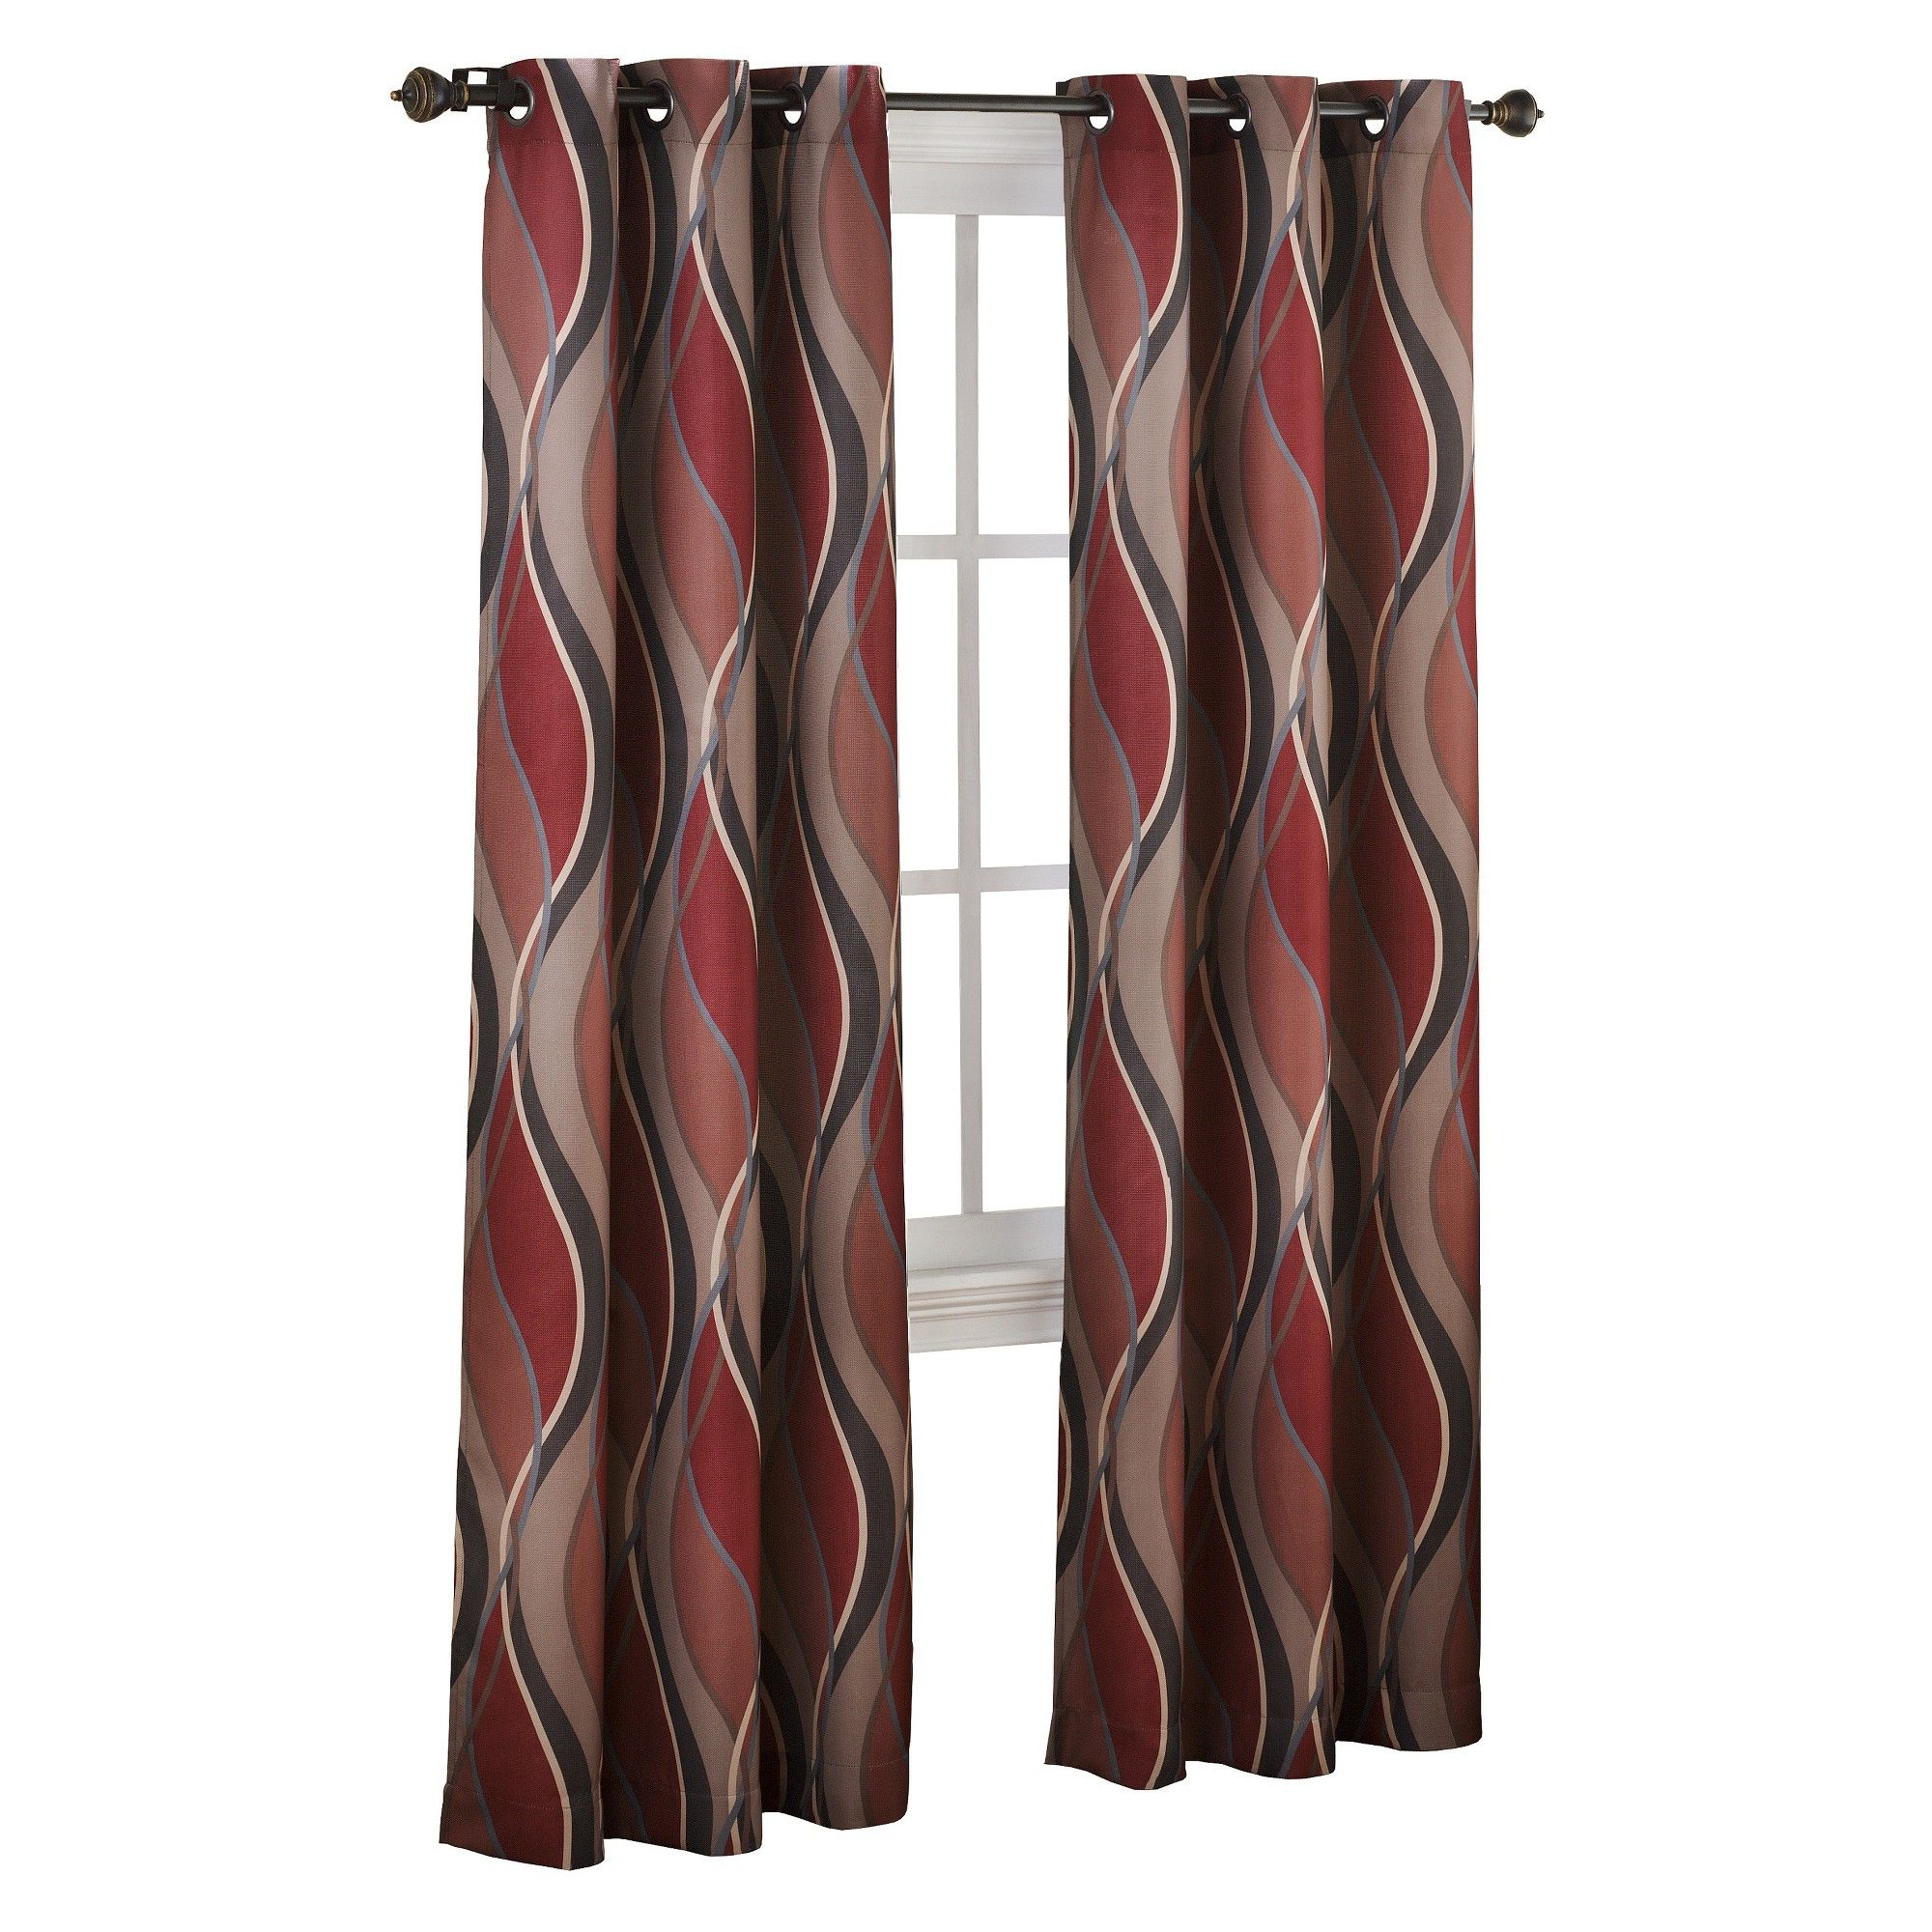 Well Liked Intersect Wave Print Casual Textured Grommet Curtain Panel With Regard To Intersect Grommet Woven Print Window Curtain Panels (View 6 of 20)